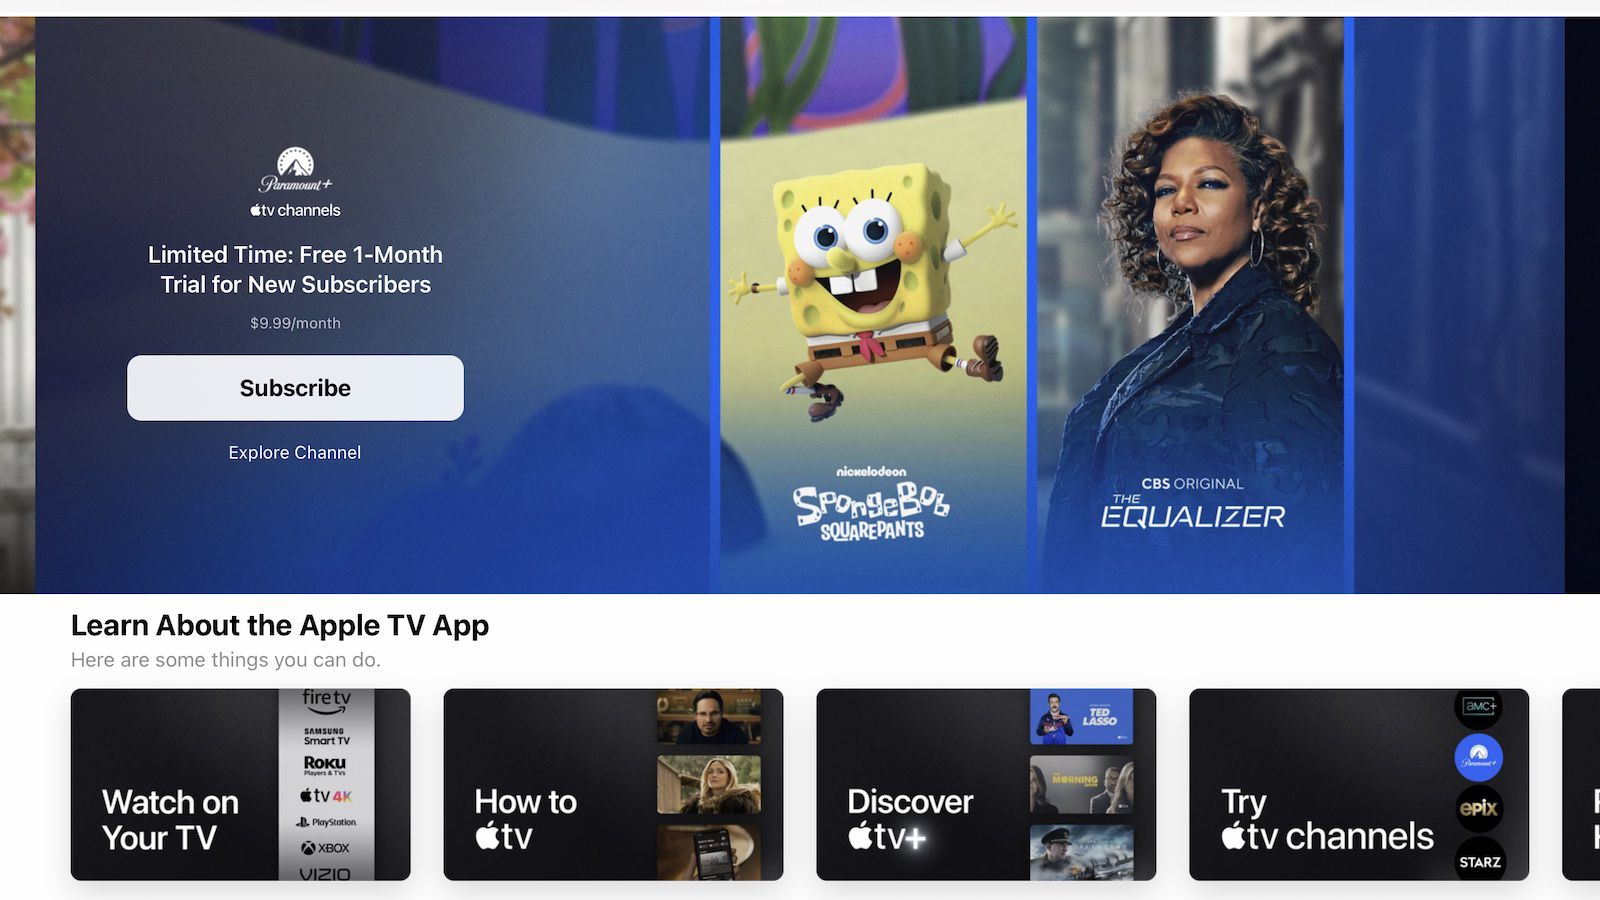 Apple TV App Offering Extended One-Month Paramount+ Trial Through June